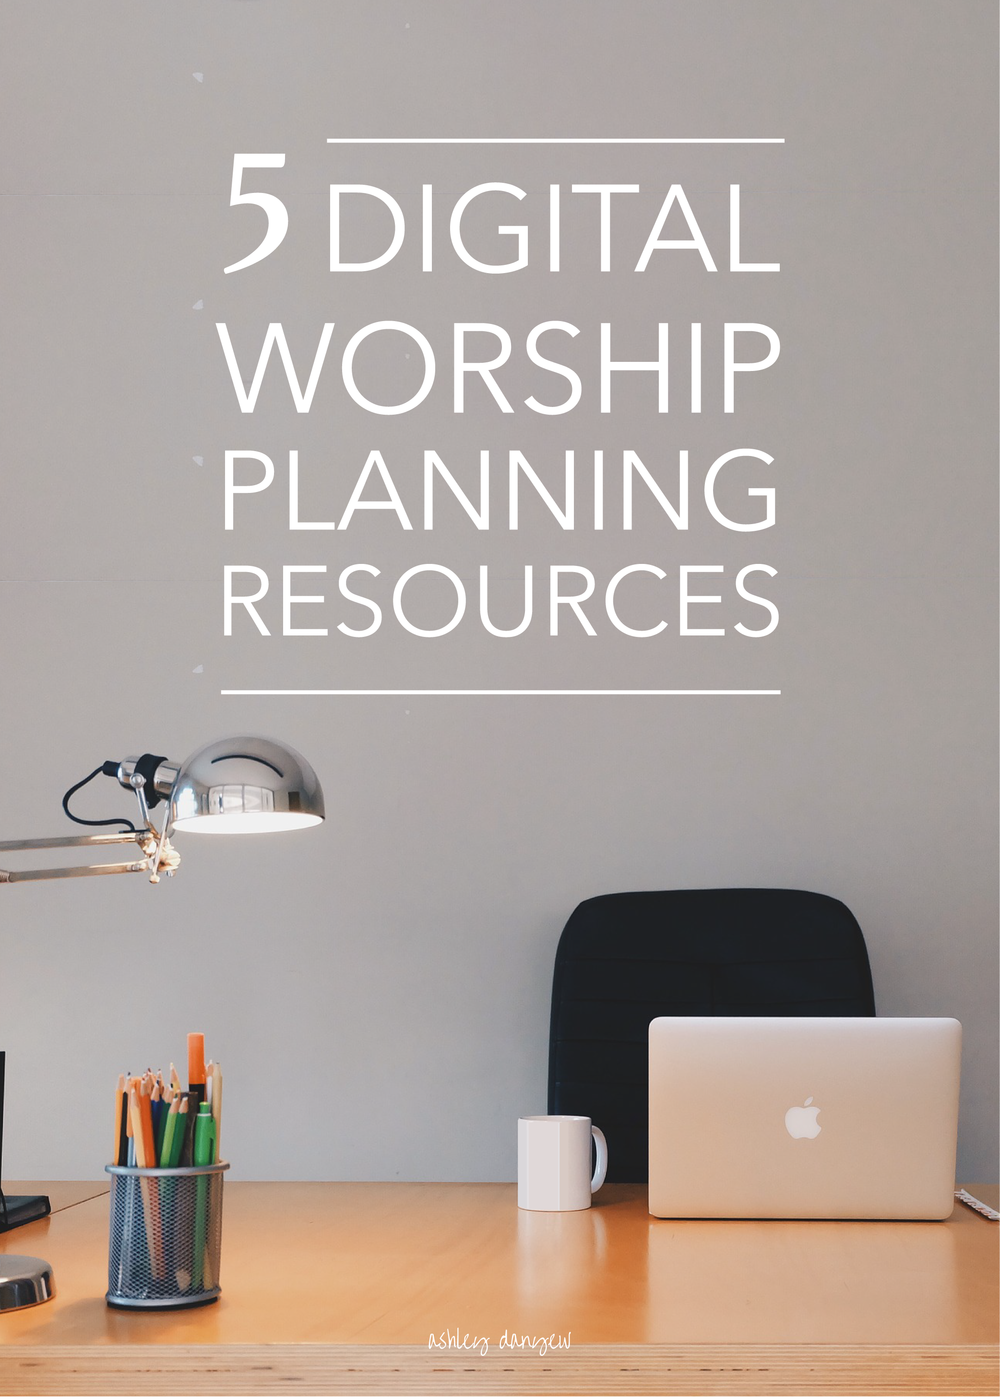 5 digital worship planning resources for church musicians, pastors, and lay leaders | @ashleydanyew